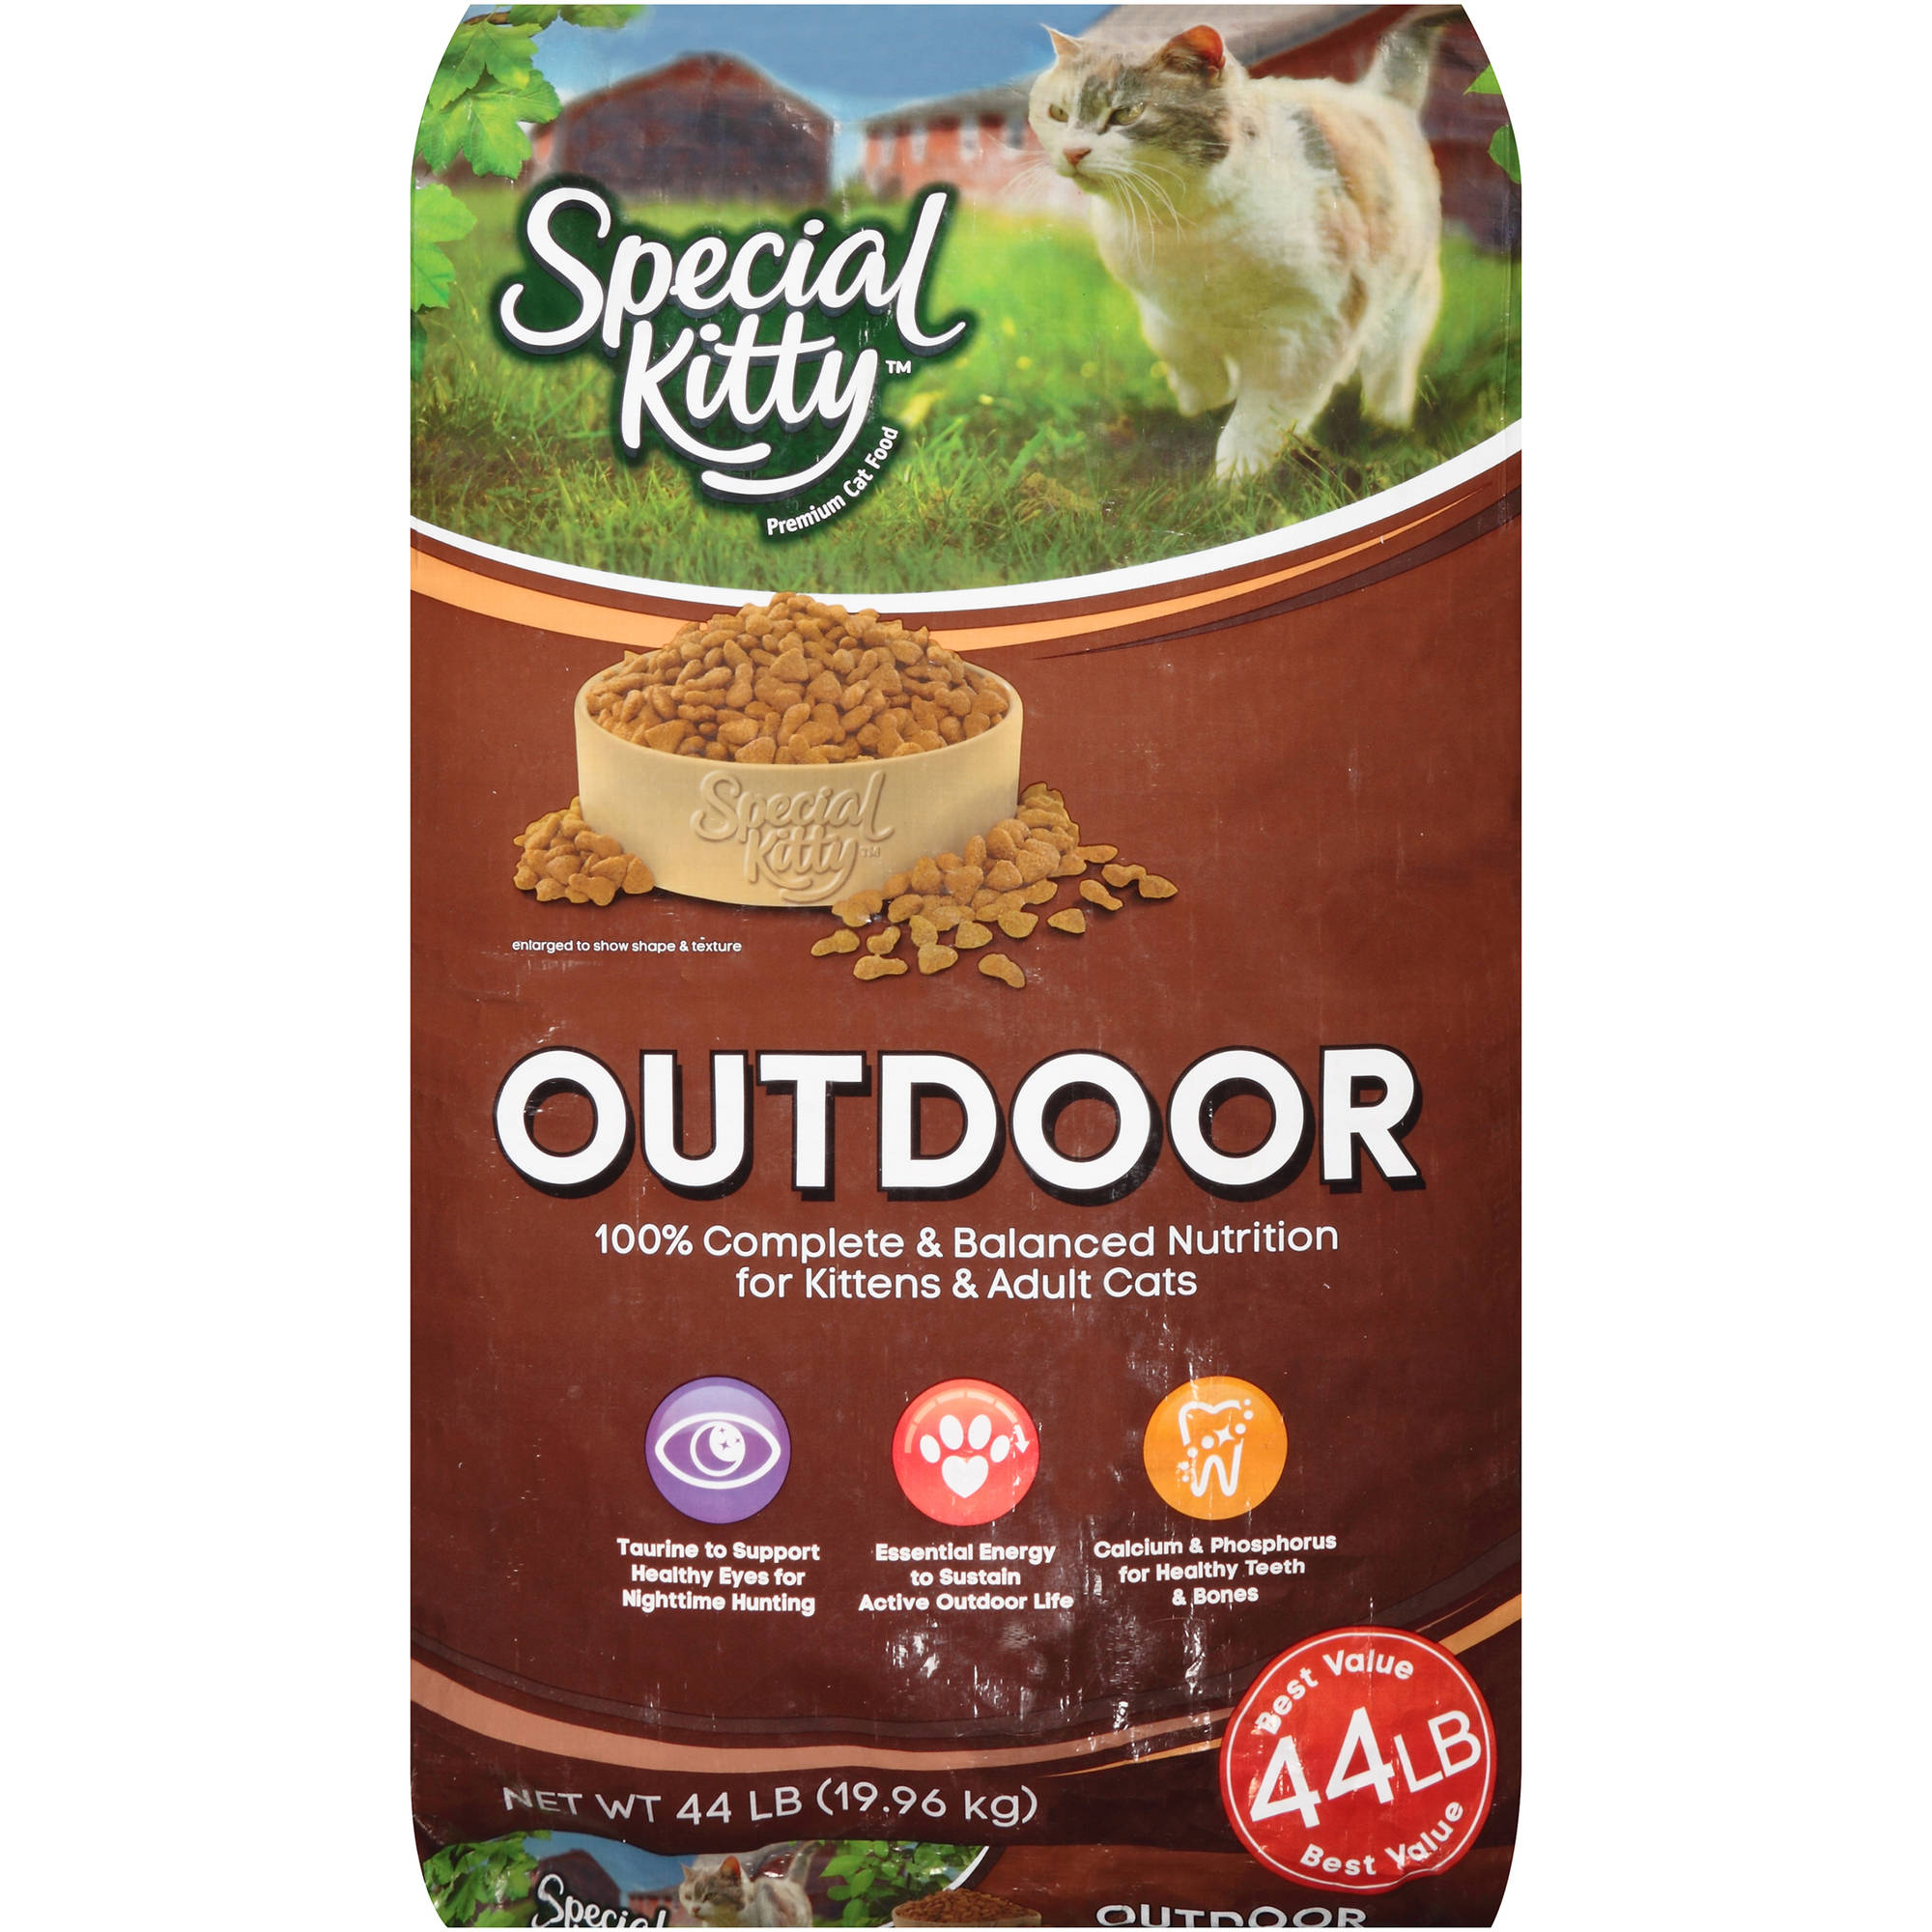 Special Kitty Outdoor Formula Dry Cat Food 44 Lb Walmart